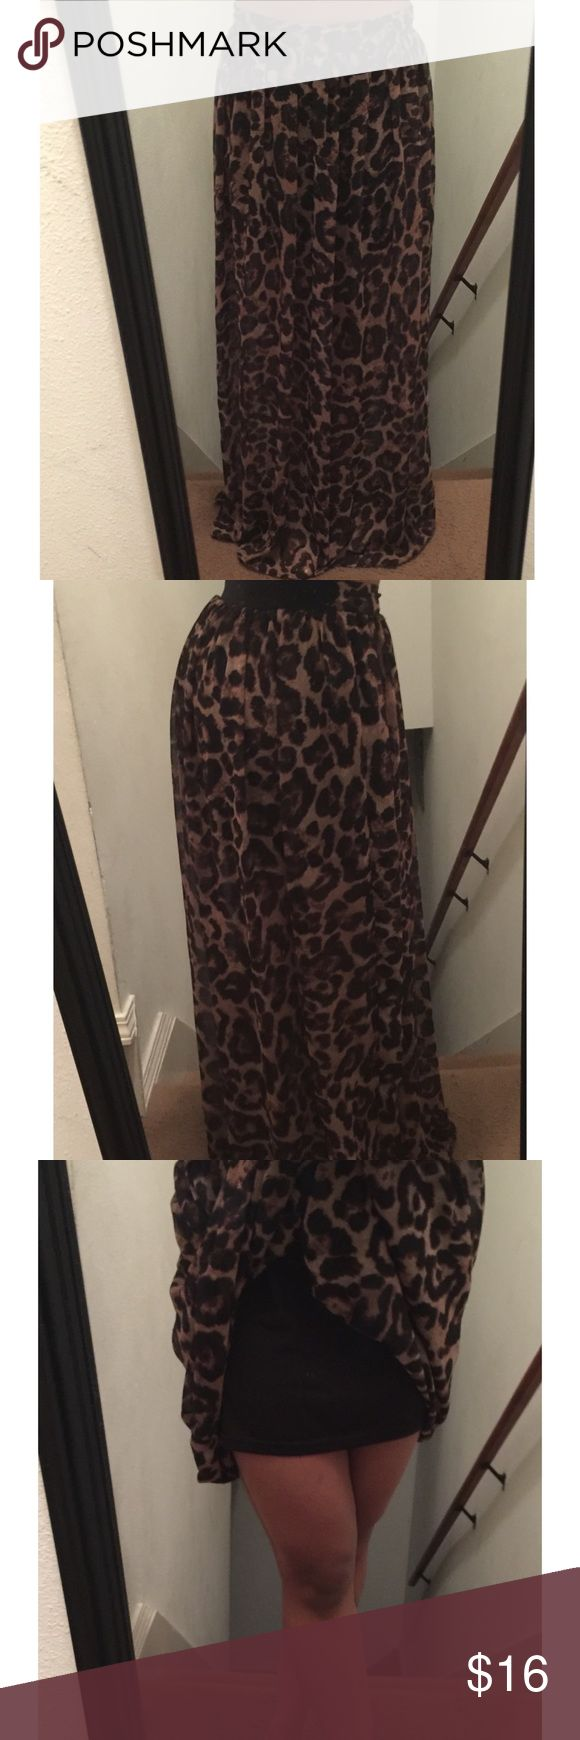 Long leopard maxi skirt Forever 21 long leopard maxi skirt Attached slip underneath, elastic band on back Size S, Good condition..see photos for measurements Forever 21 Skirts Maxi